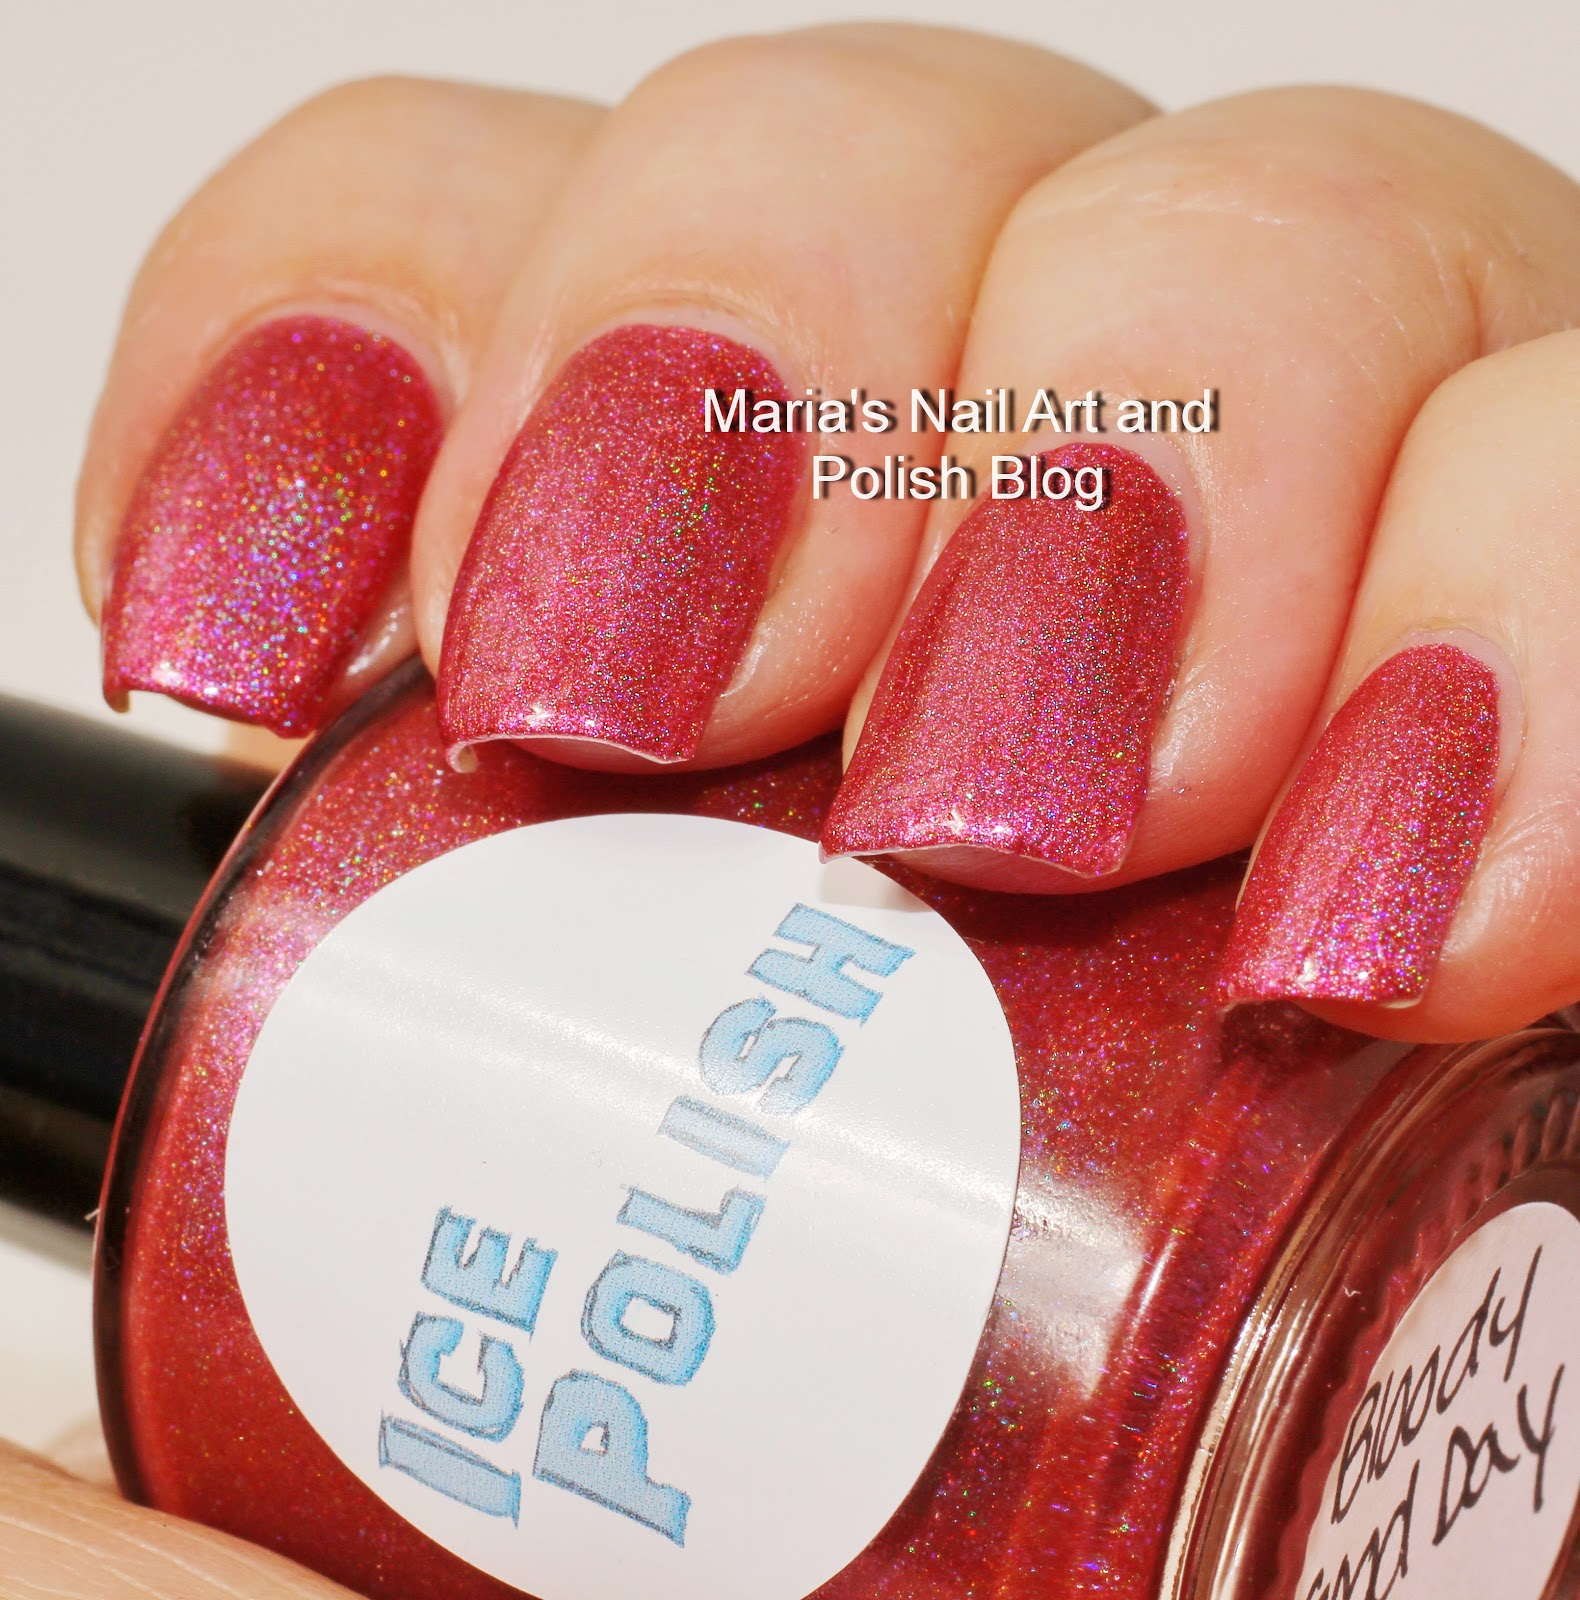 Marias Nail Art And Polish Blog Flushed With Stripes And: Marias Nail Art And Polish Blog: Ice Polish Bloody Good